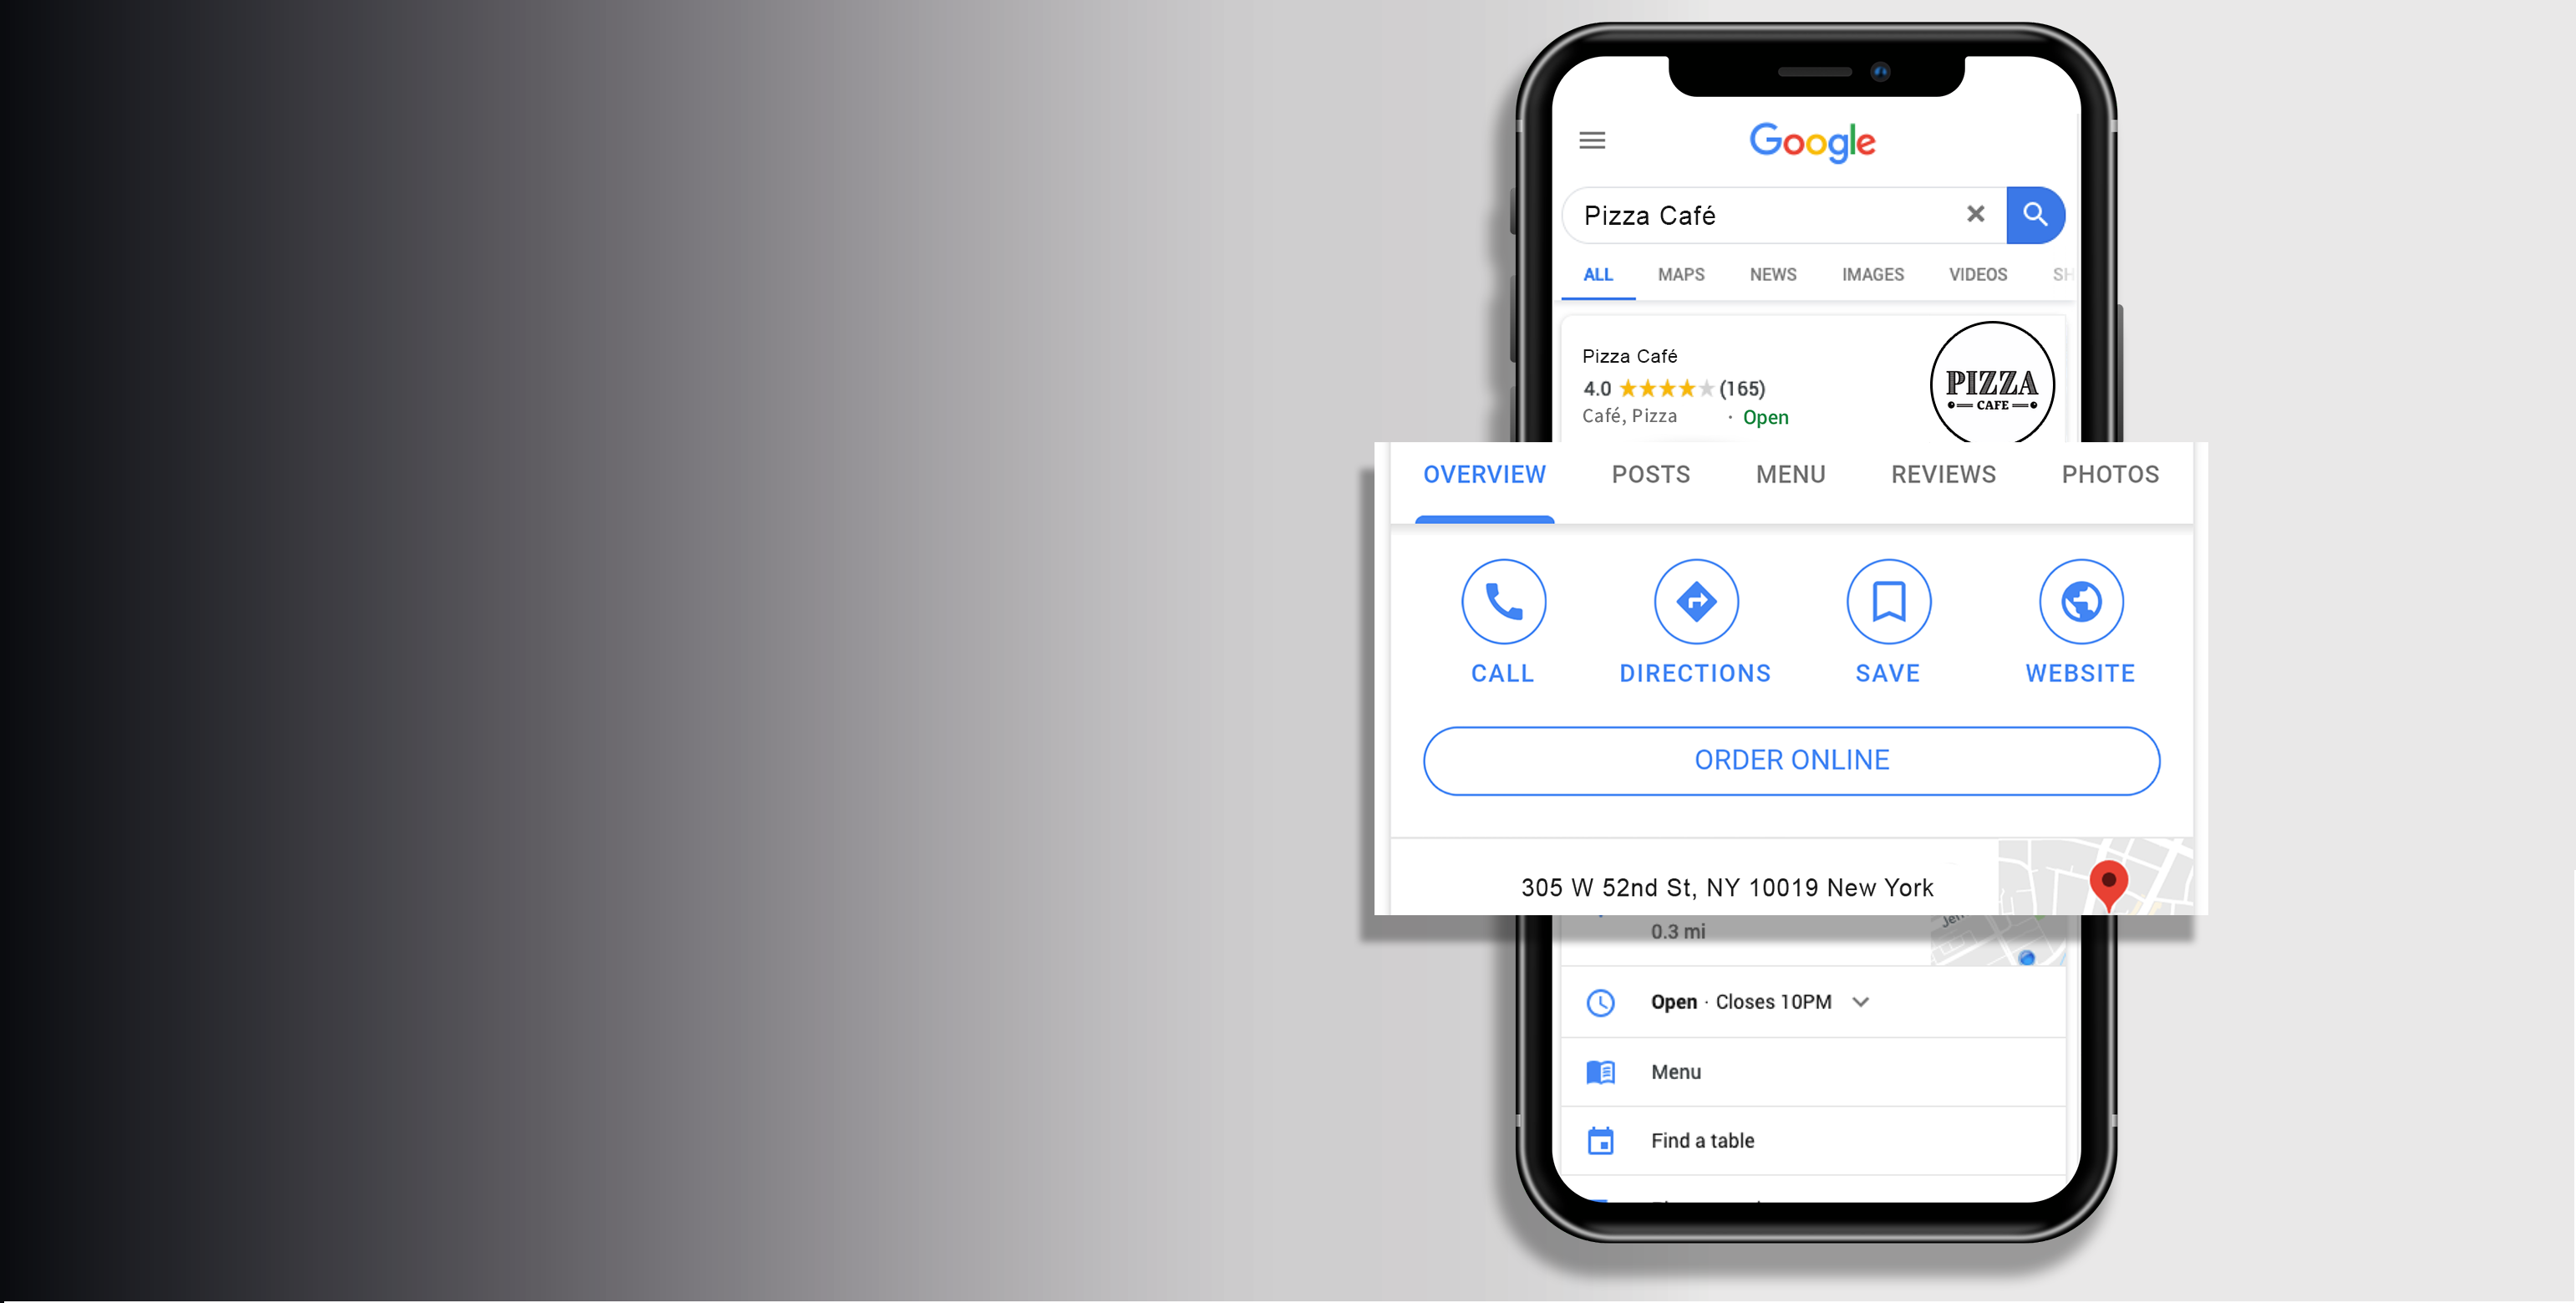 Ordering with Google